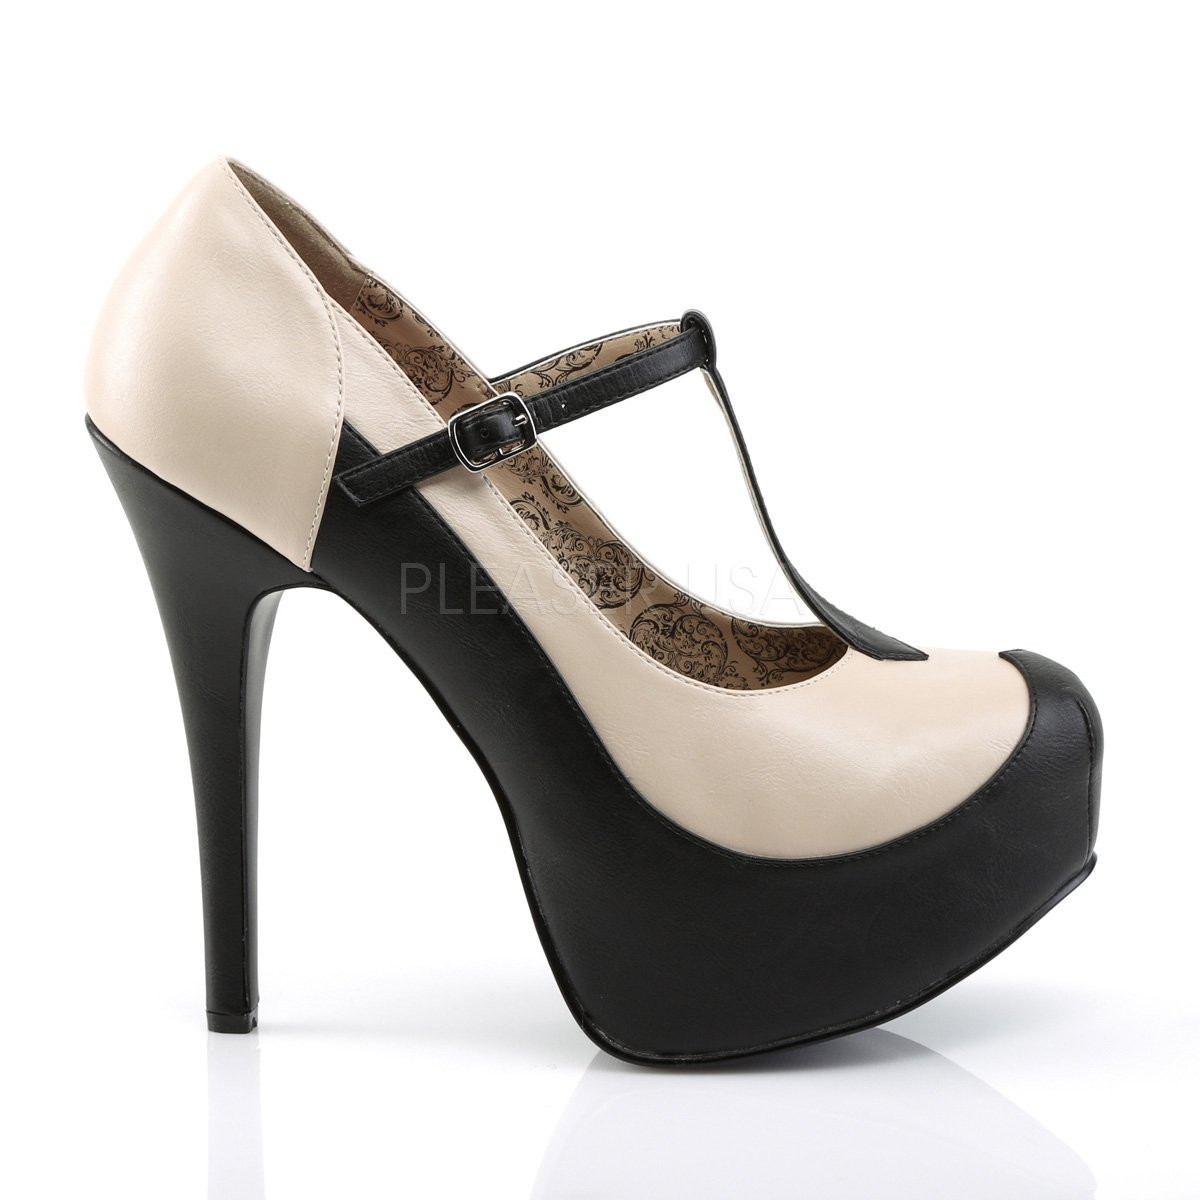 349798c6800 Higher Heels Pleaser Pink Label Womens Platform Court Shoes Extra Wide and  In Bigger Sizes Teeze-45W Black Cream  Amazon.co.uk  Shoes   Bags